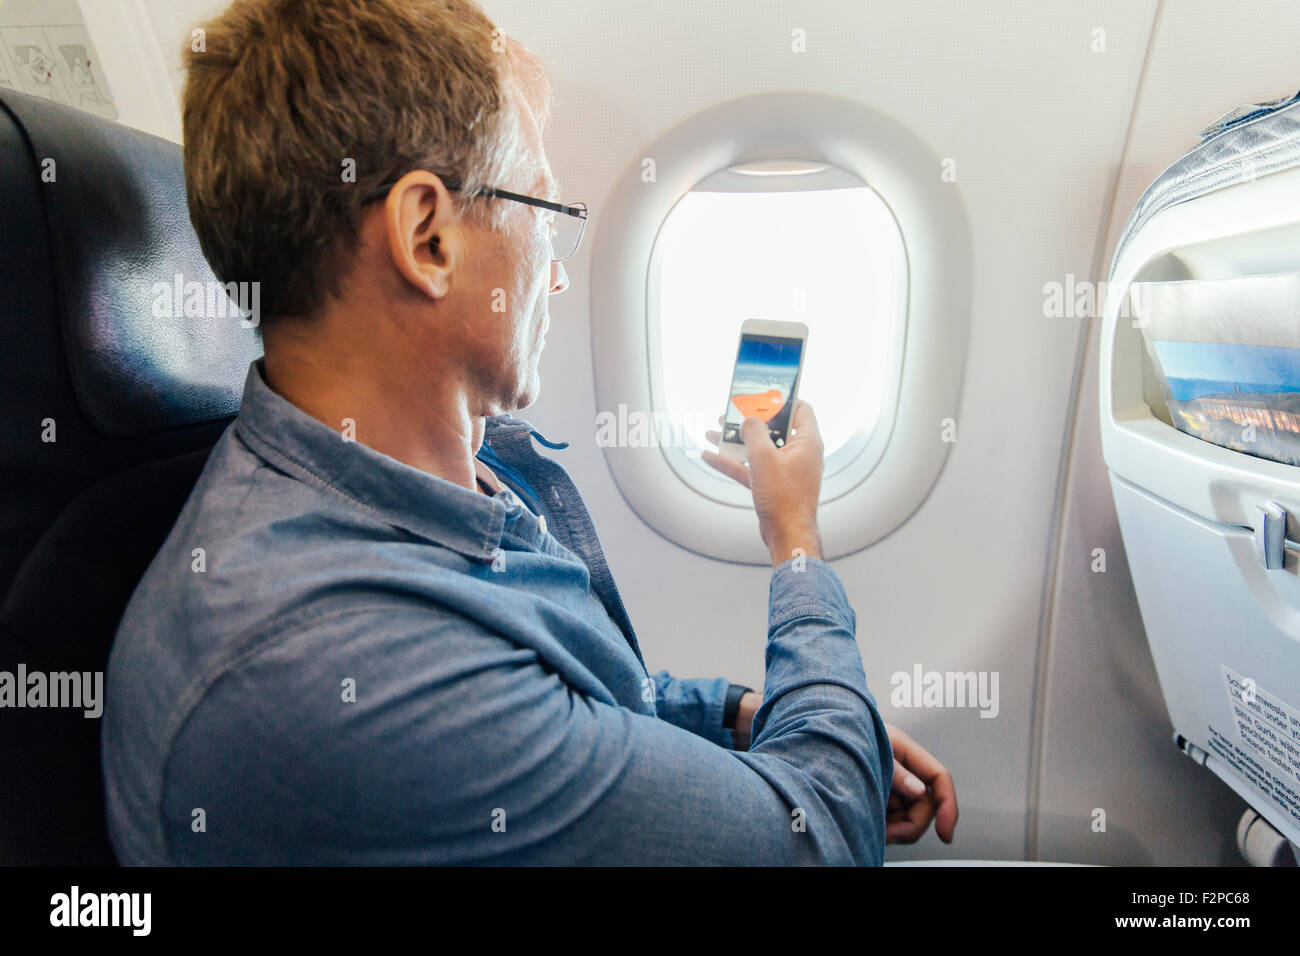 Man taking photo with his cell phone out of the window while flying on an airplane - Stock Image